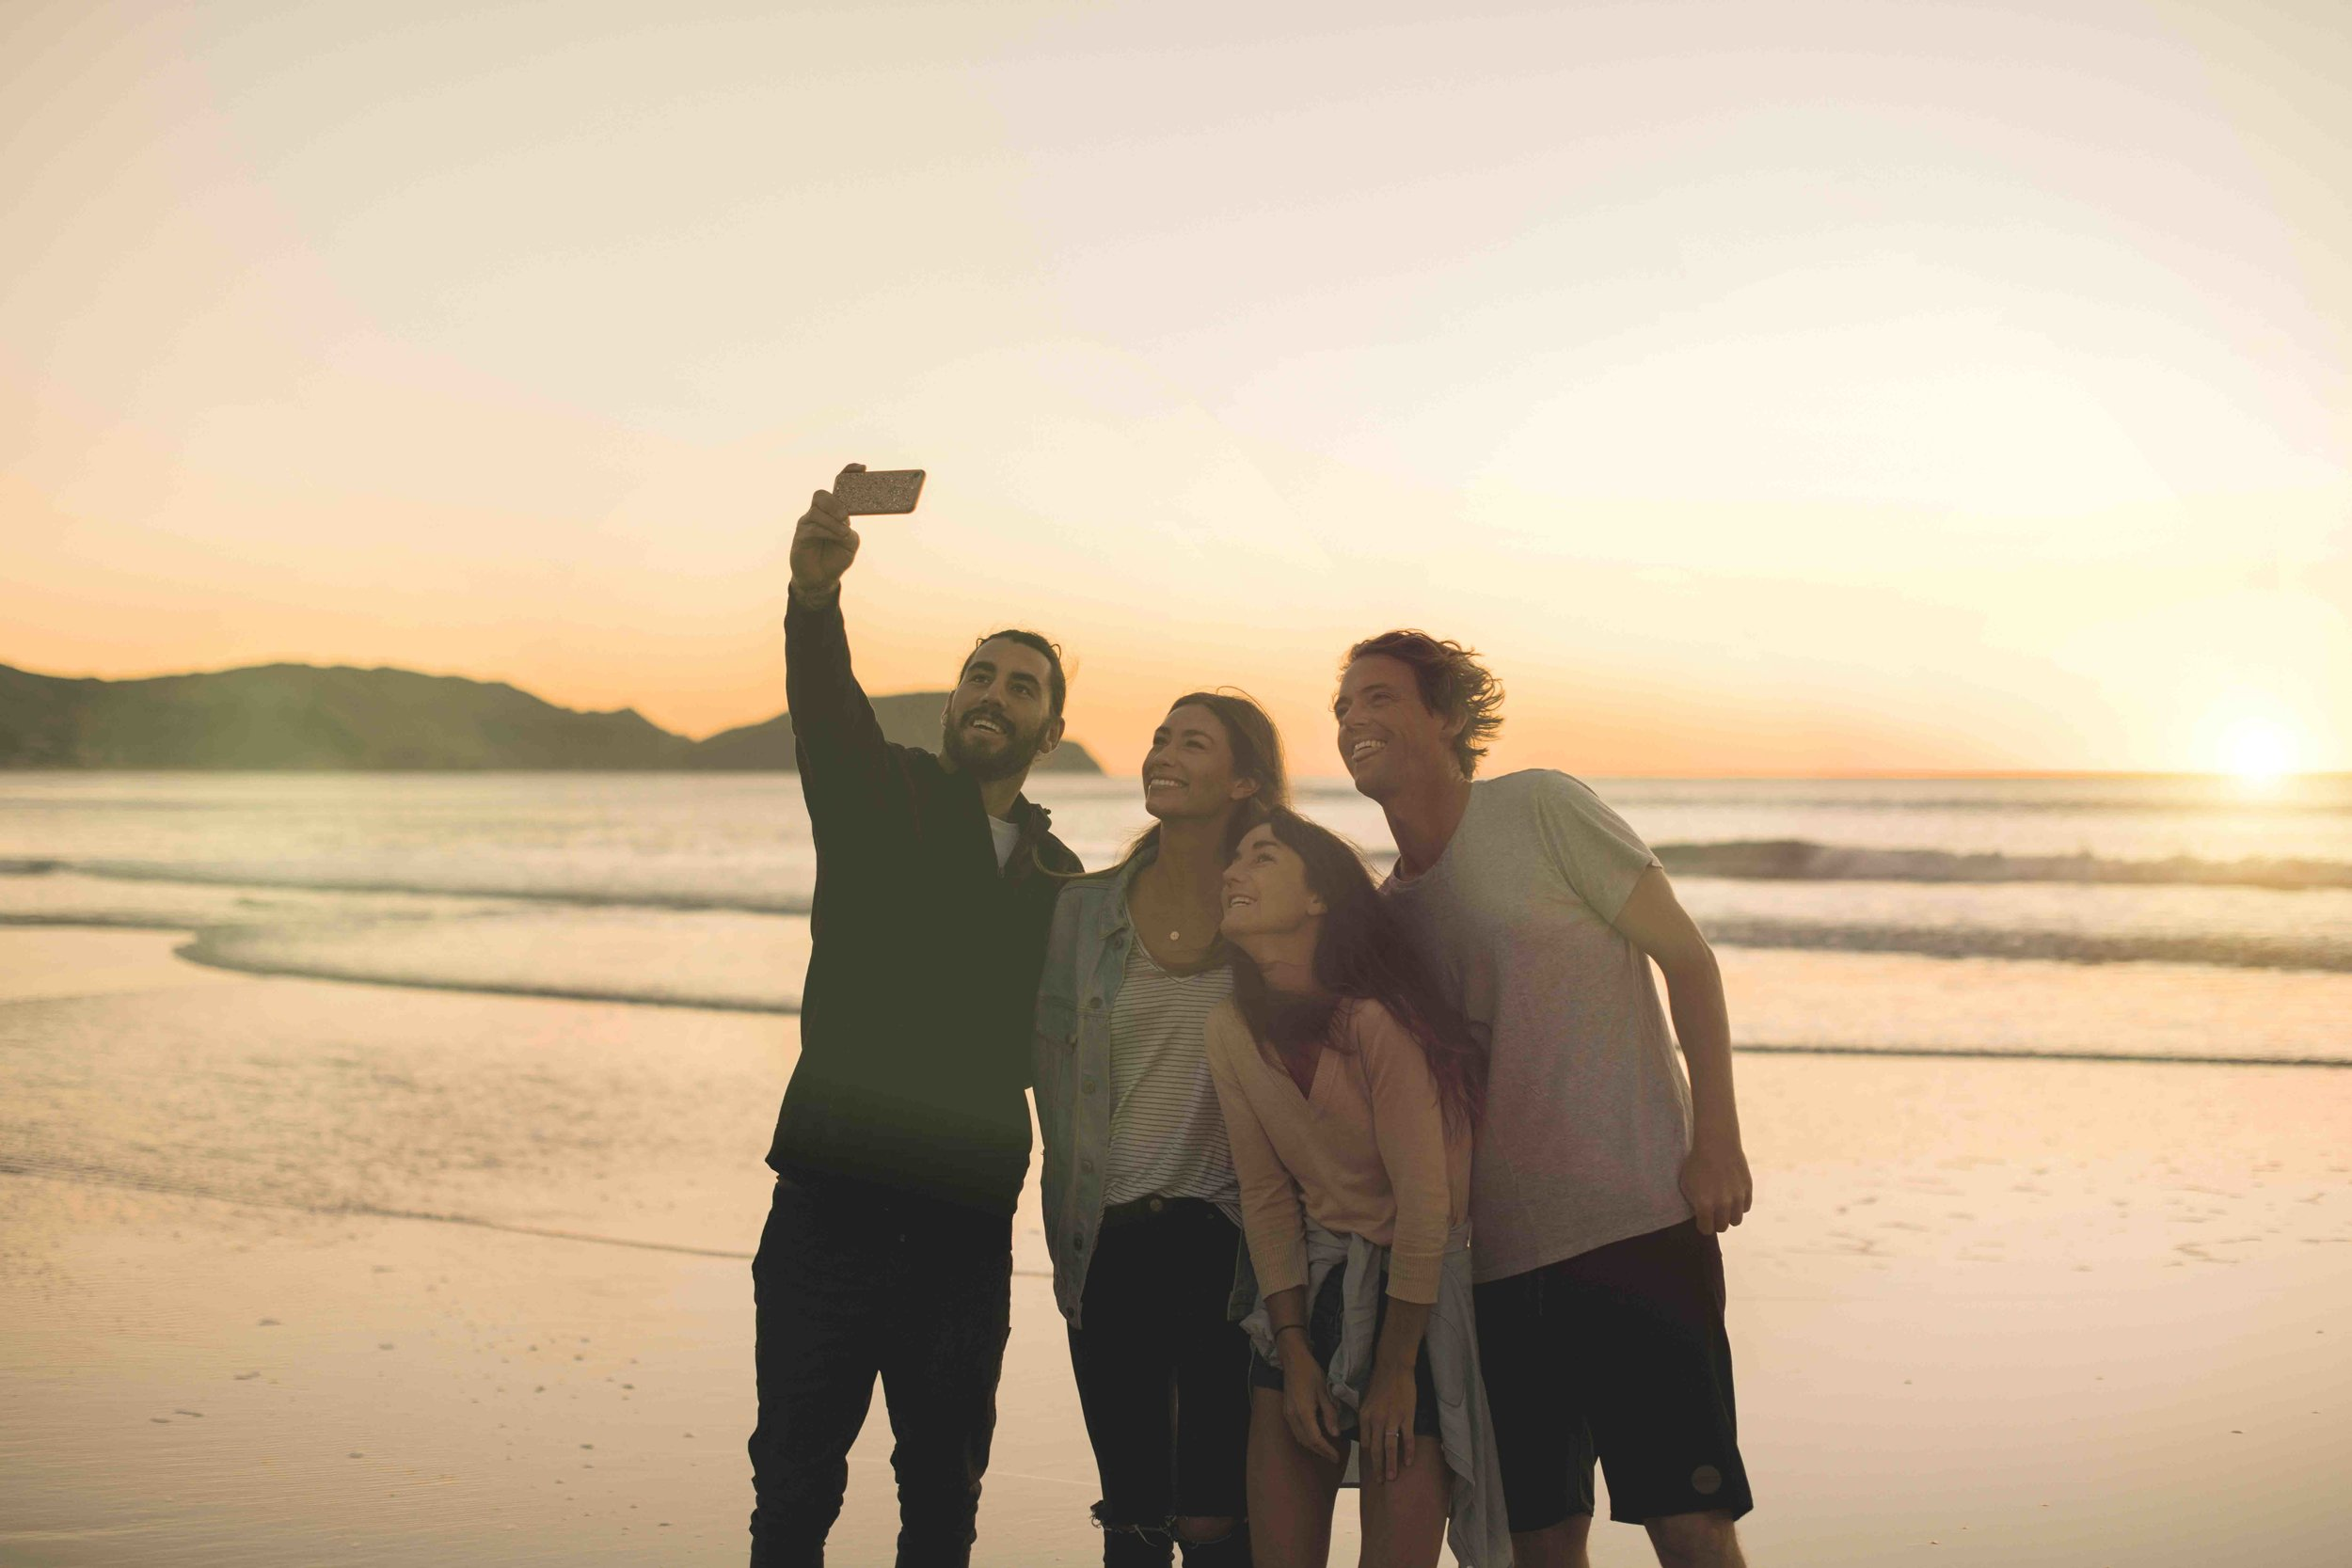 A sunrise photo with friends at Wainui beach is something for the bucketlist